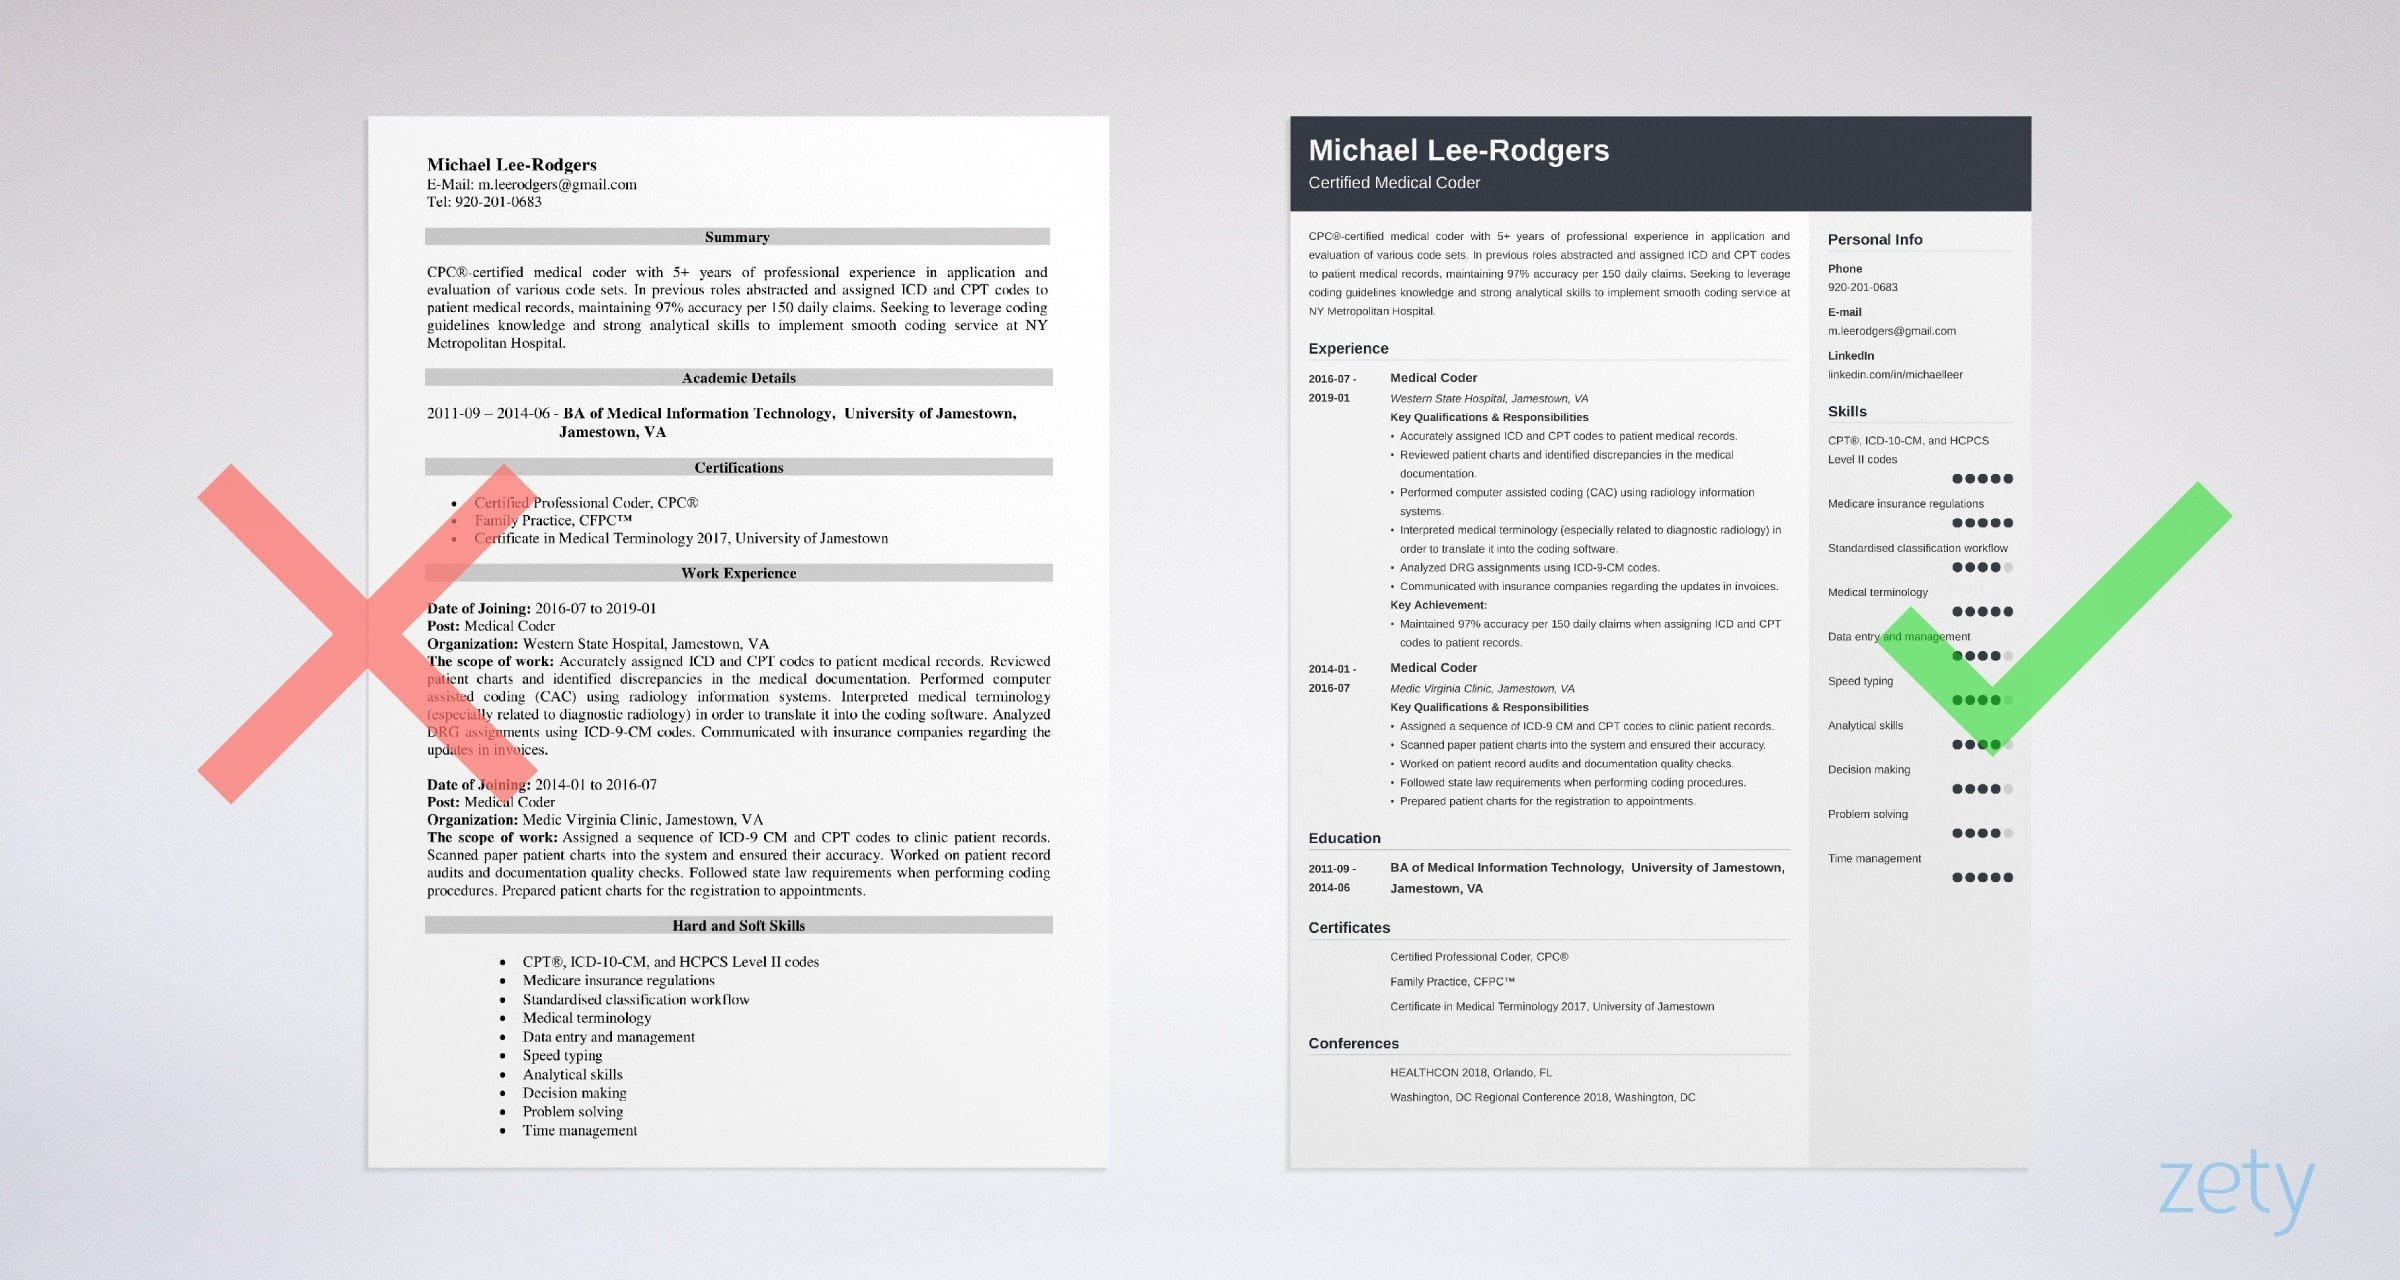 medical coder resume sample guide tips coding examples example gabrielle carrubba school Resume Medical Coding Resume Examples